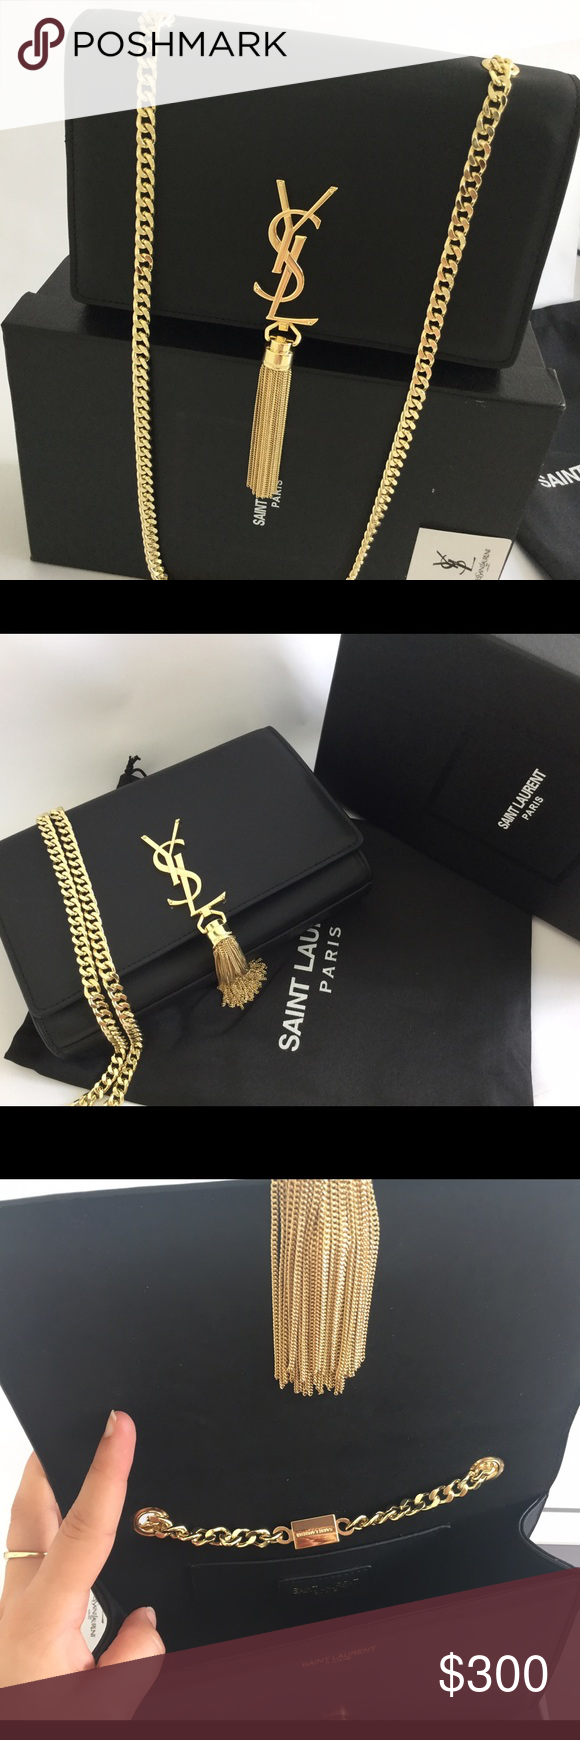 Amazing AAA Single Original Quality This is the AAA single original quality. Meaning it's greater than high quality Rep. Actual pictures, comment if interested in seeing more pictures of something specific. Comes with box, dust bag and receipt. Get it here or on my website for $245 Saint Laurent Accessories